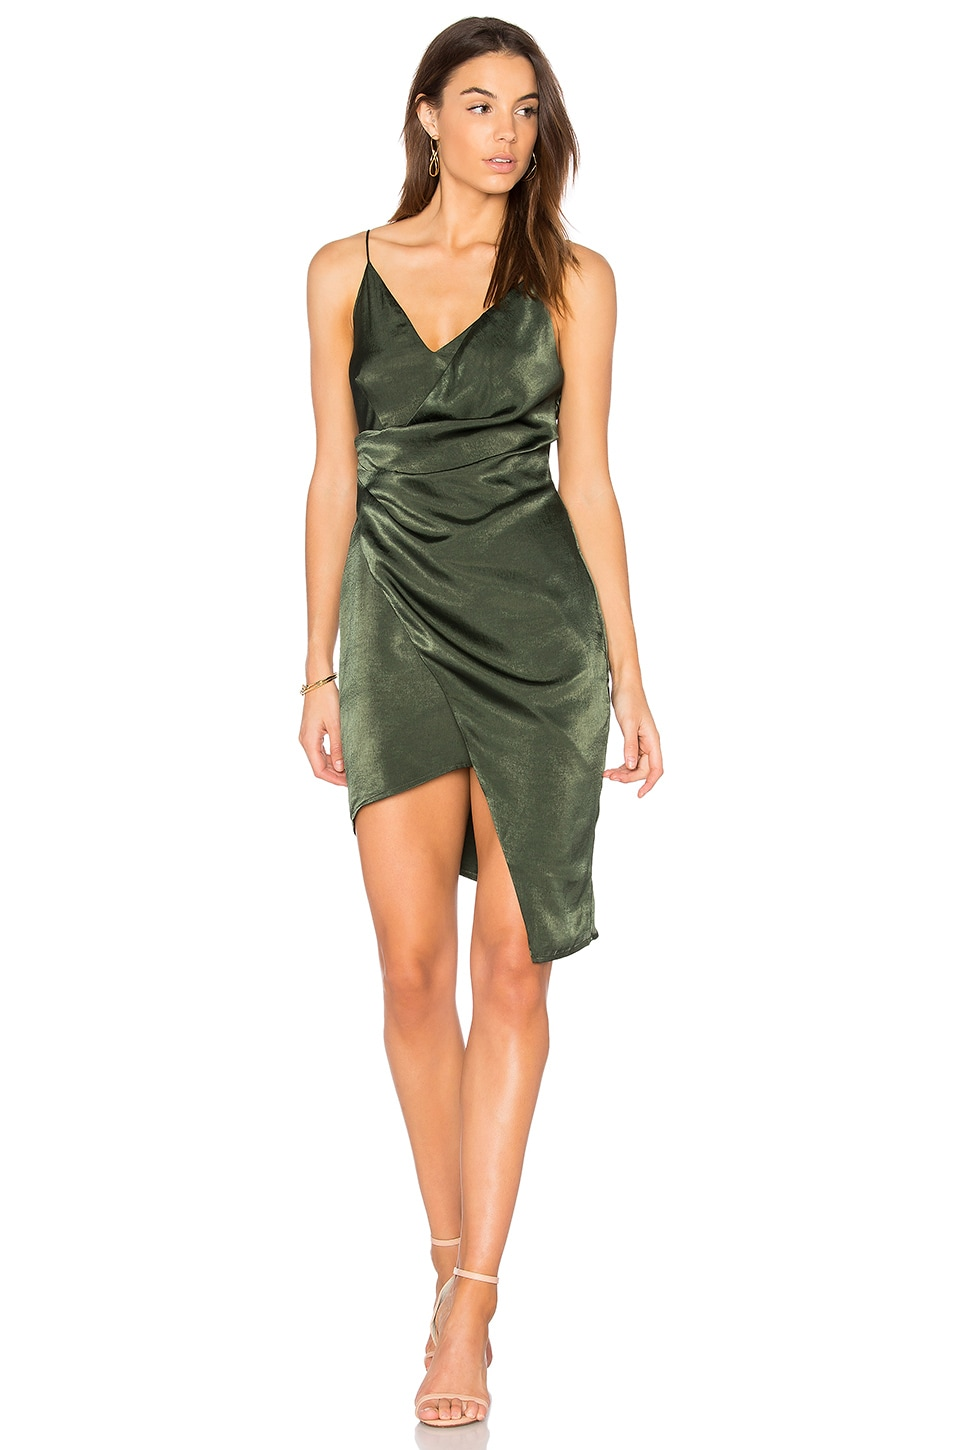 STYLESTALKER Trinity Dress in Forest Green